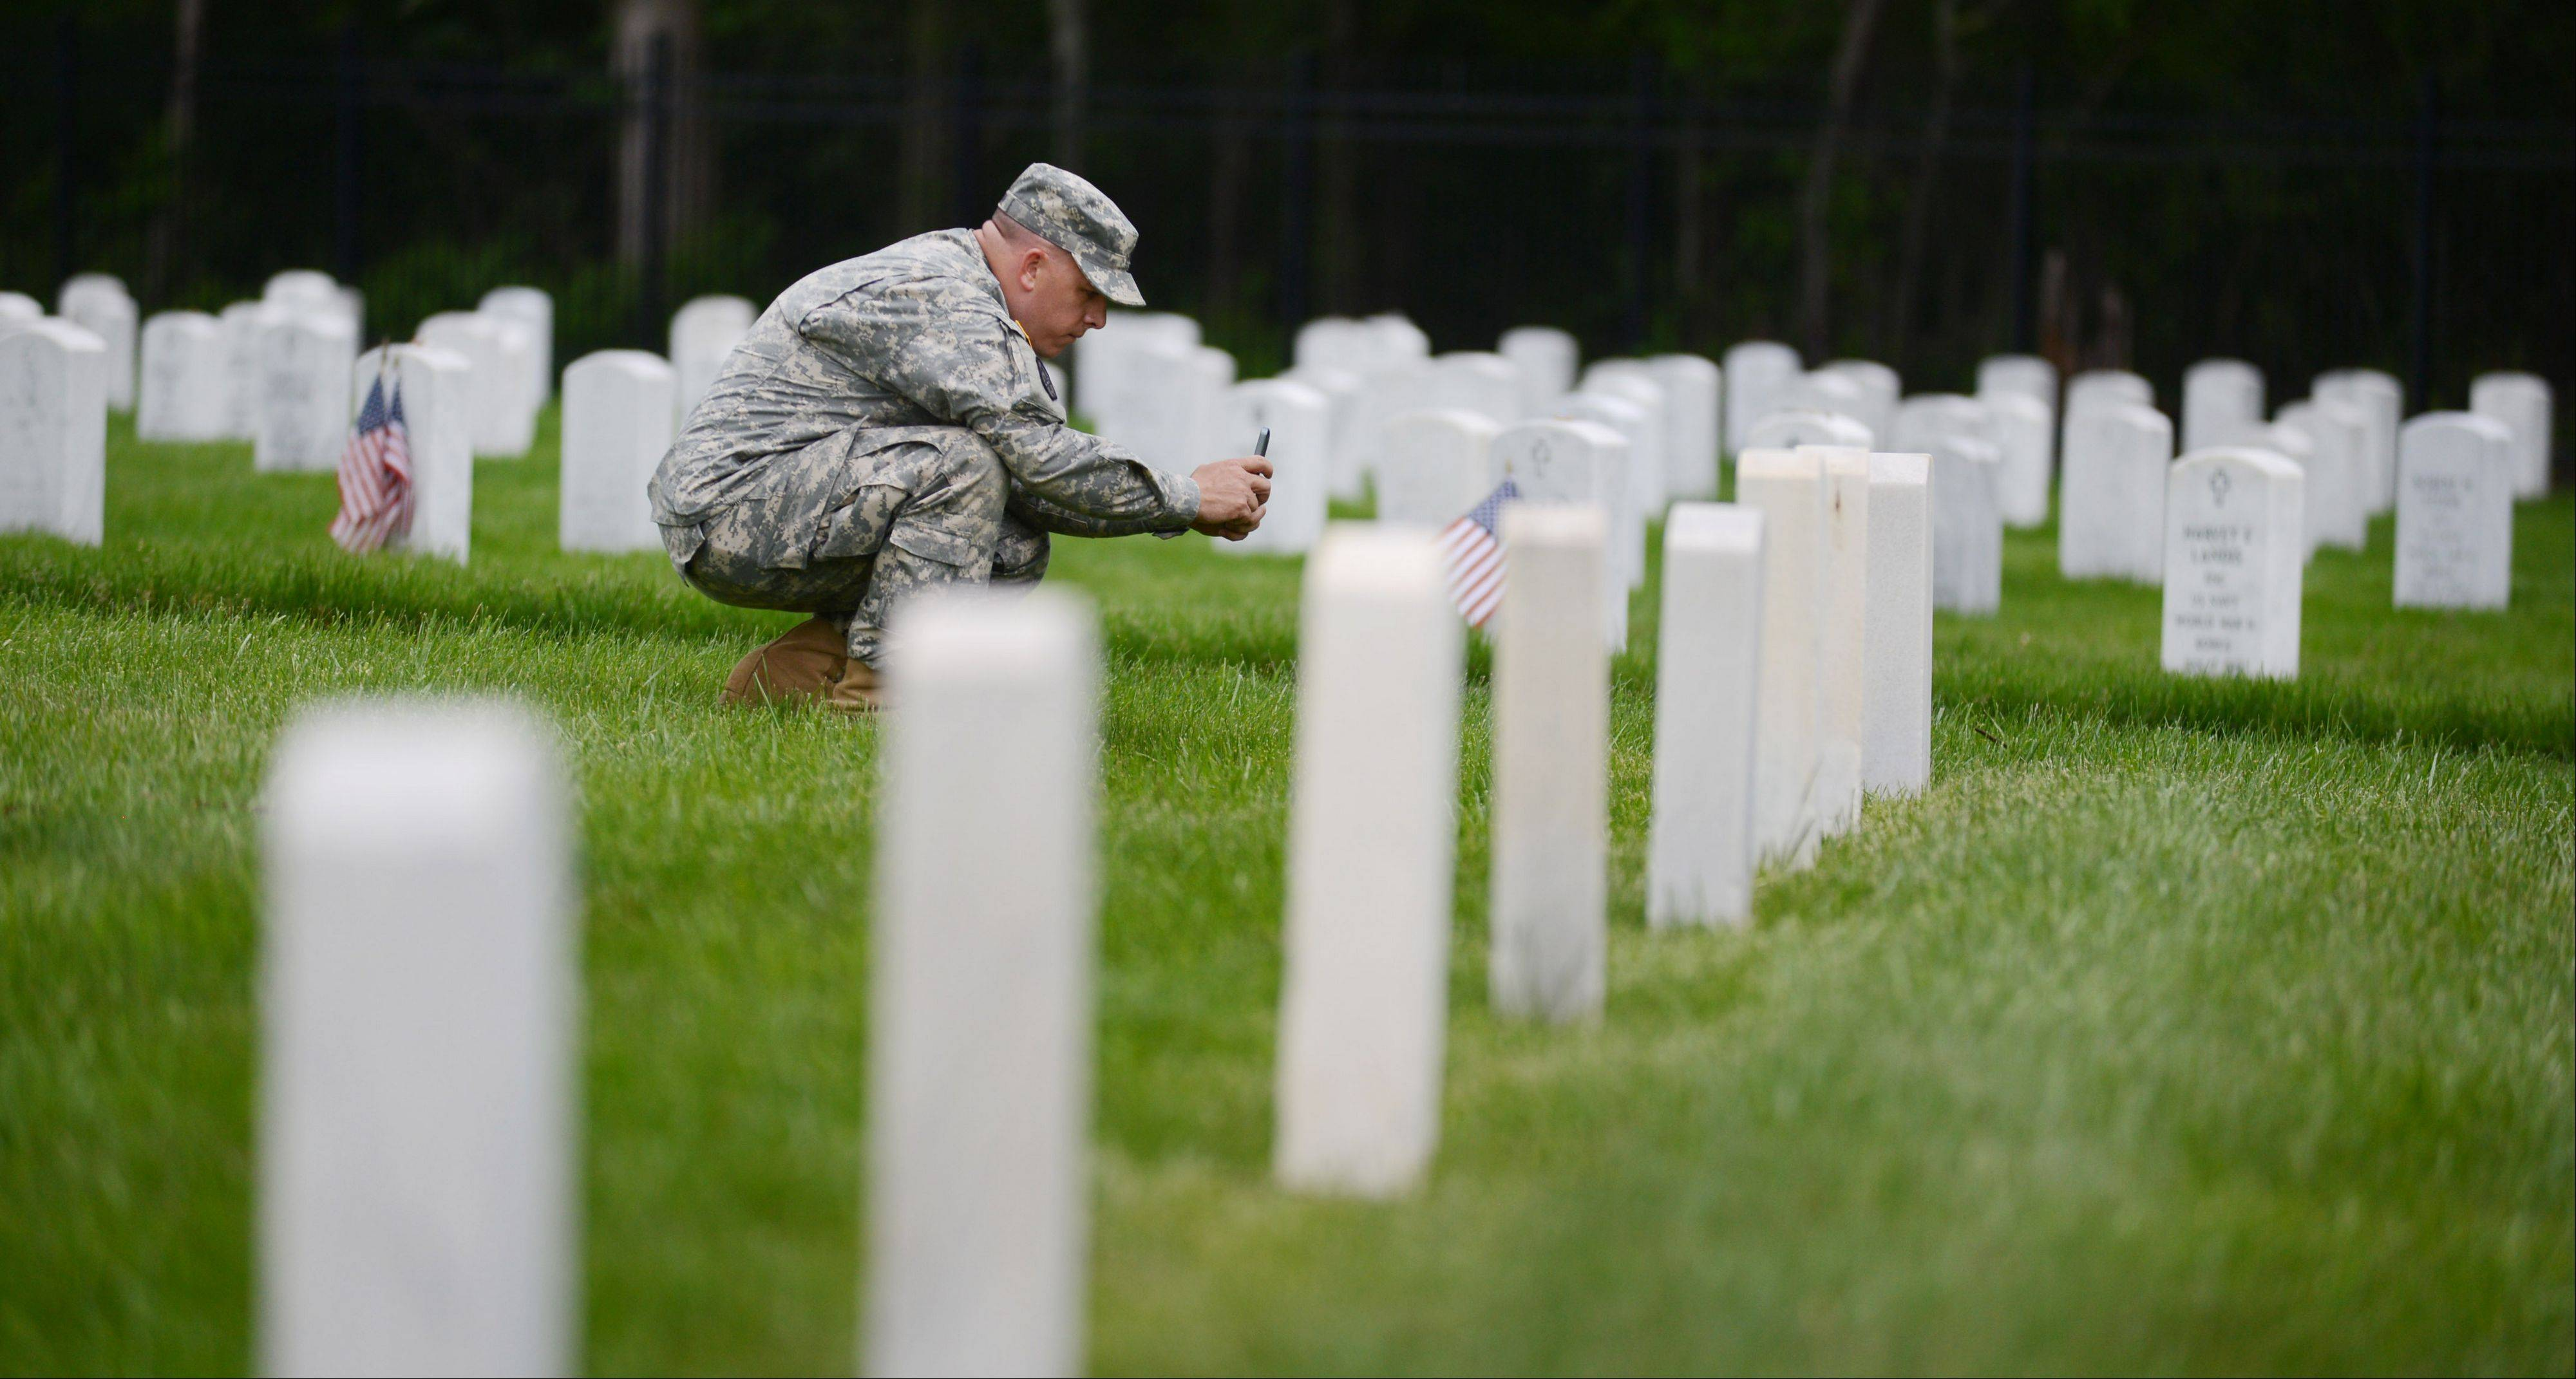 U.S. Army Sgt. John Roloson of Fort McCoy in Wisconsin uses an iPhone to photograph a grave marker at the Fort Sheridan Cemetery. The project is an effort to produce an online, searchable database and a smartphone app to allow visitors to find grave locations and view photos.